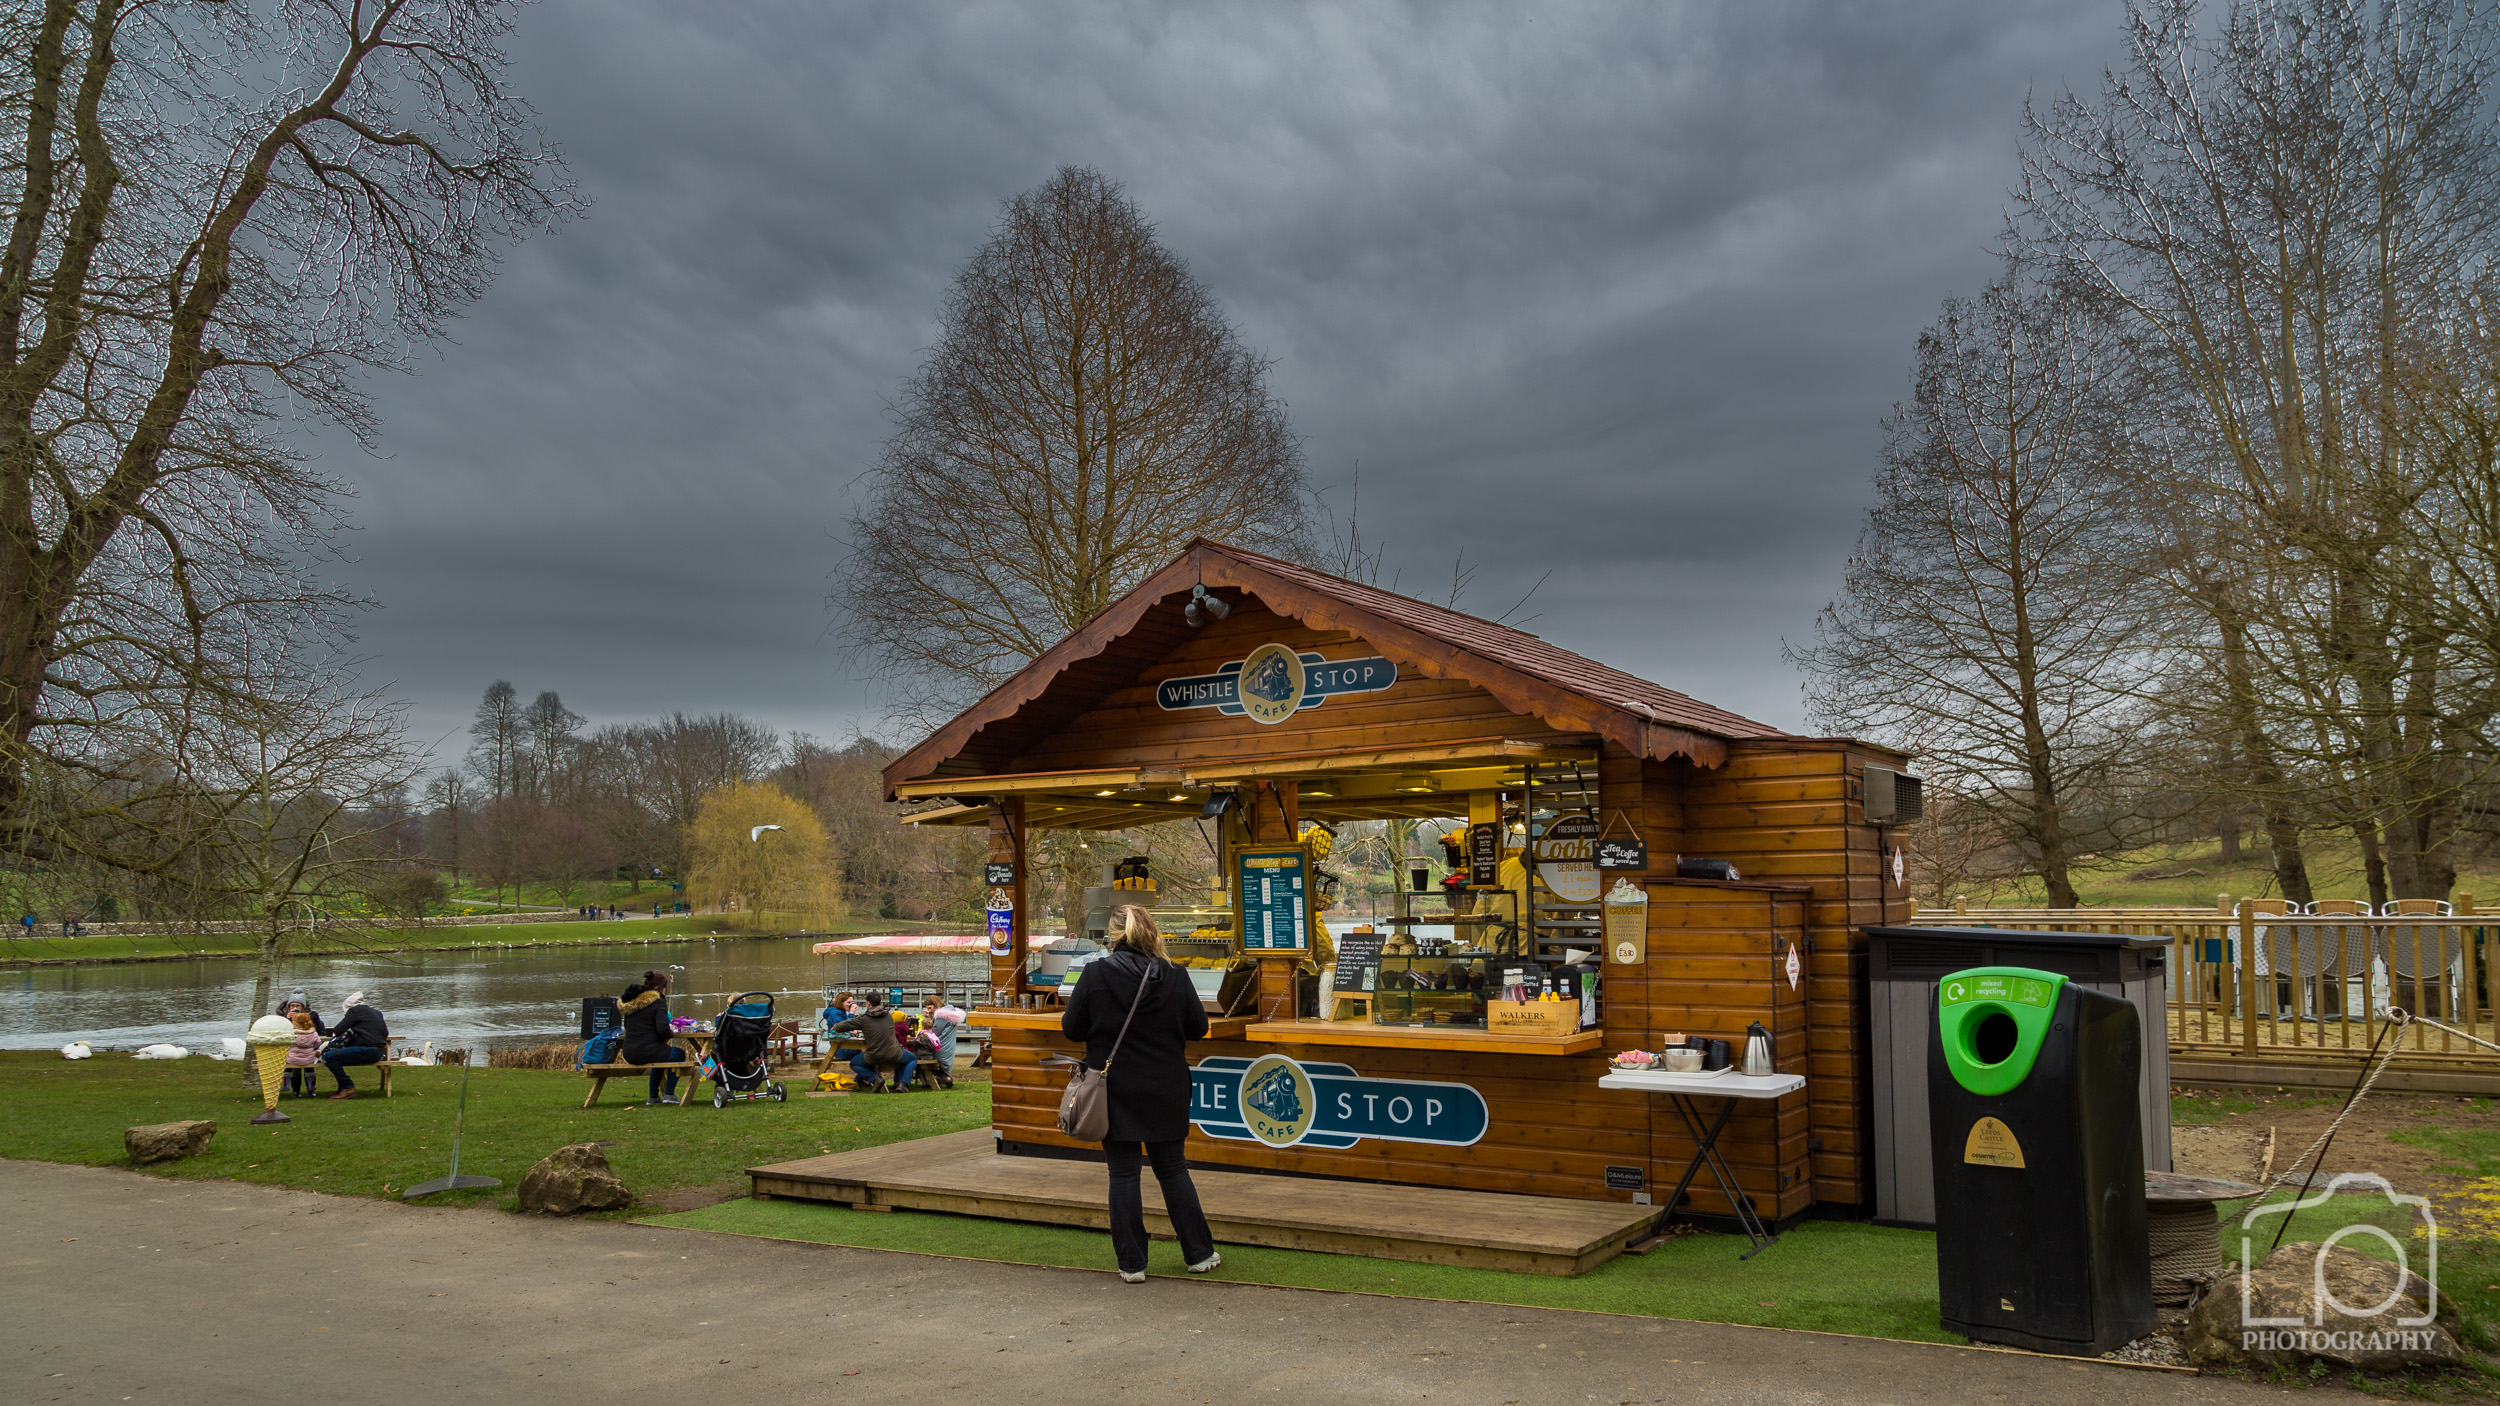 Leeds Castle Whistle Stop Cafe - 1249